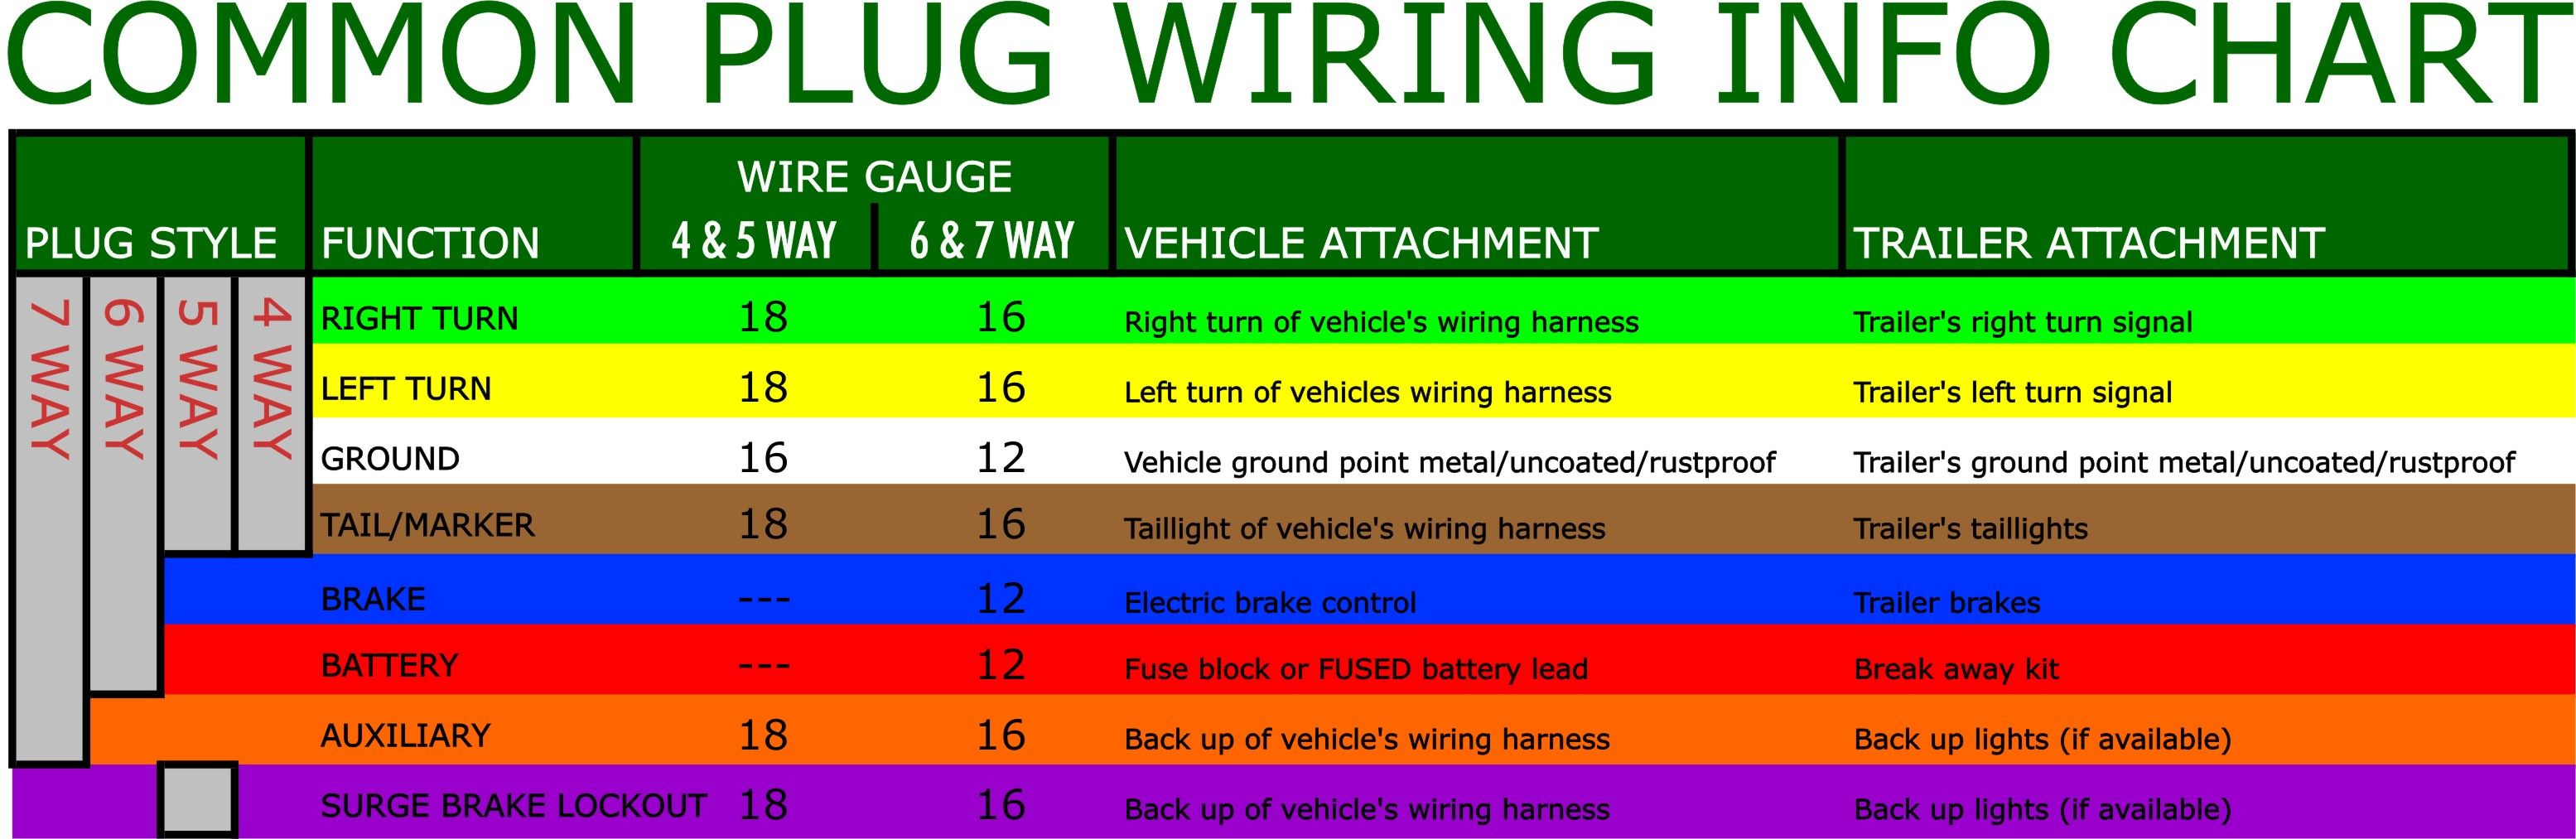 What Are The Most Common Trailer Plugs? - Common Trailer Wiring Diagram